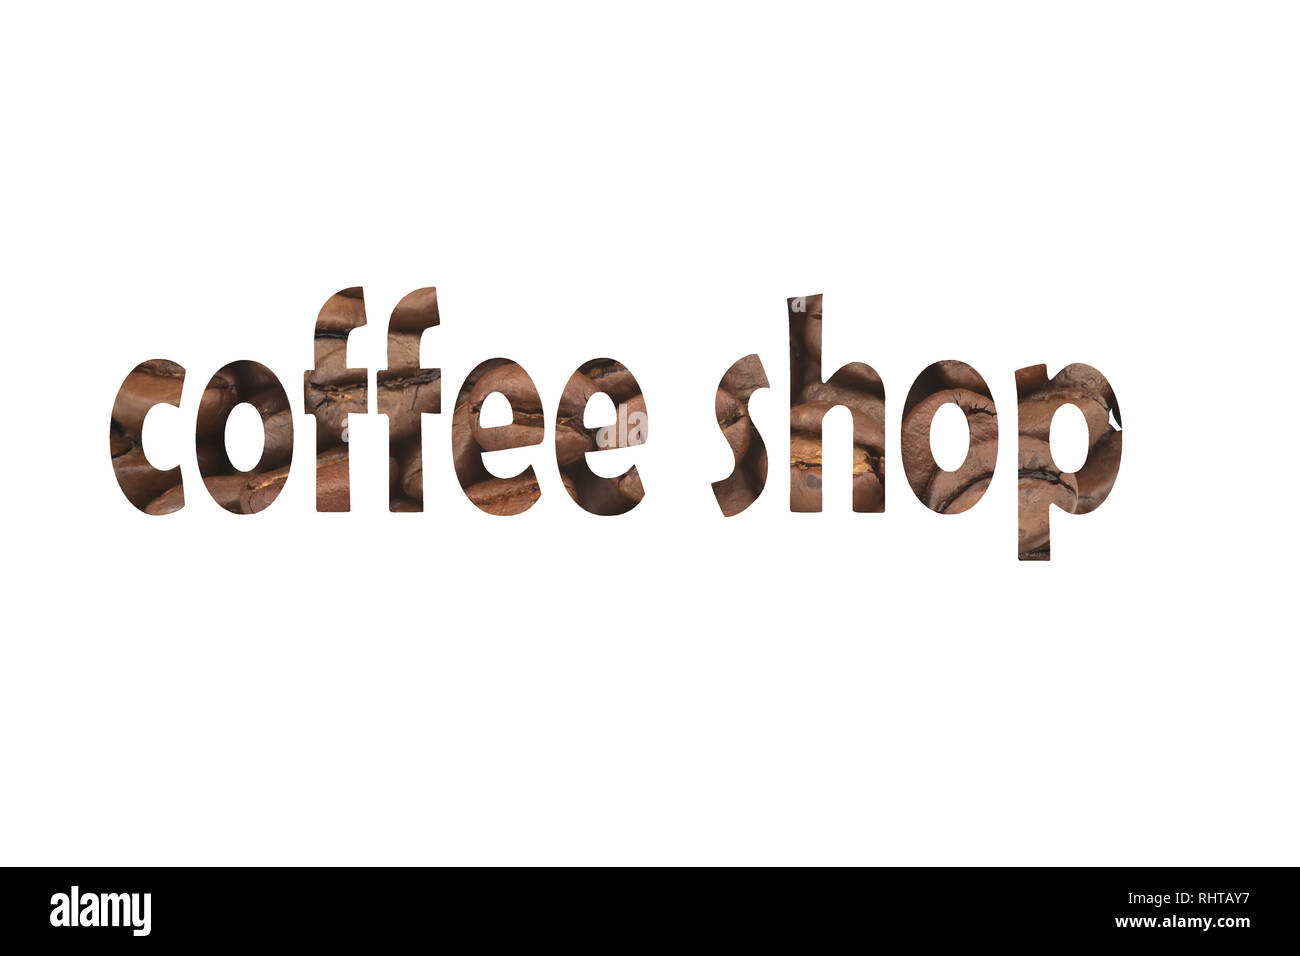 Image with coffee beans and cut out word Coffee shop Stock Photo